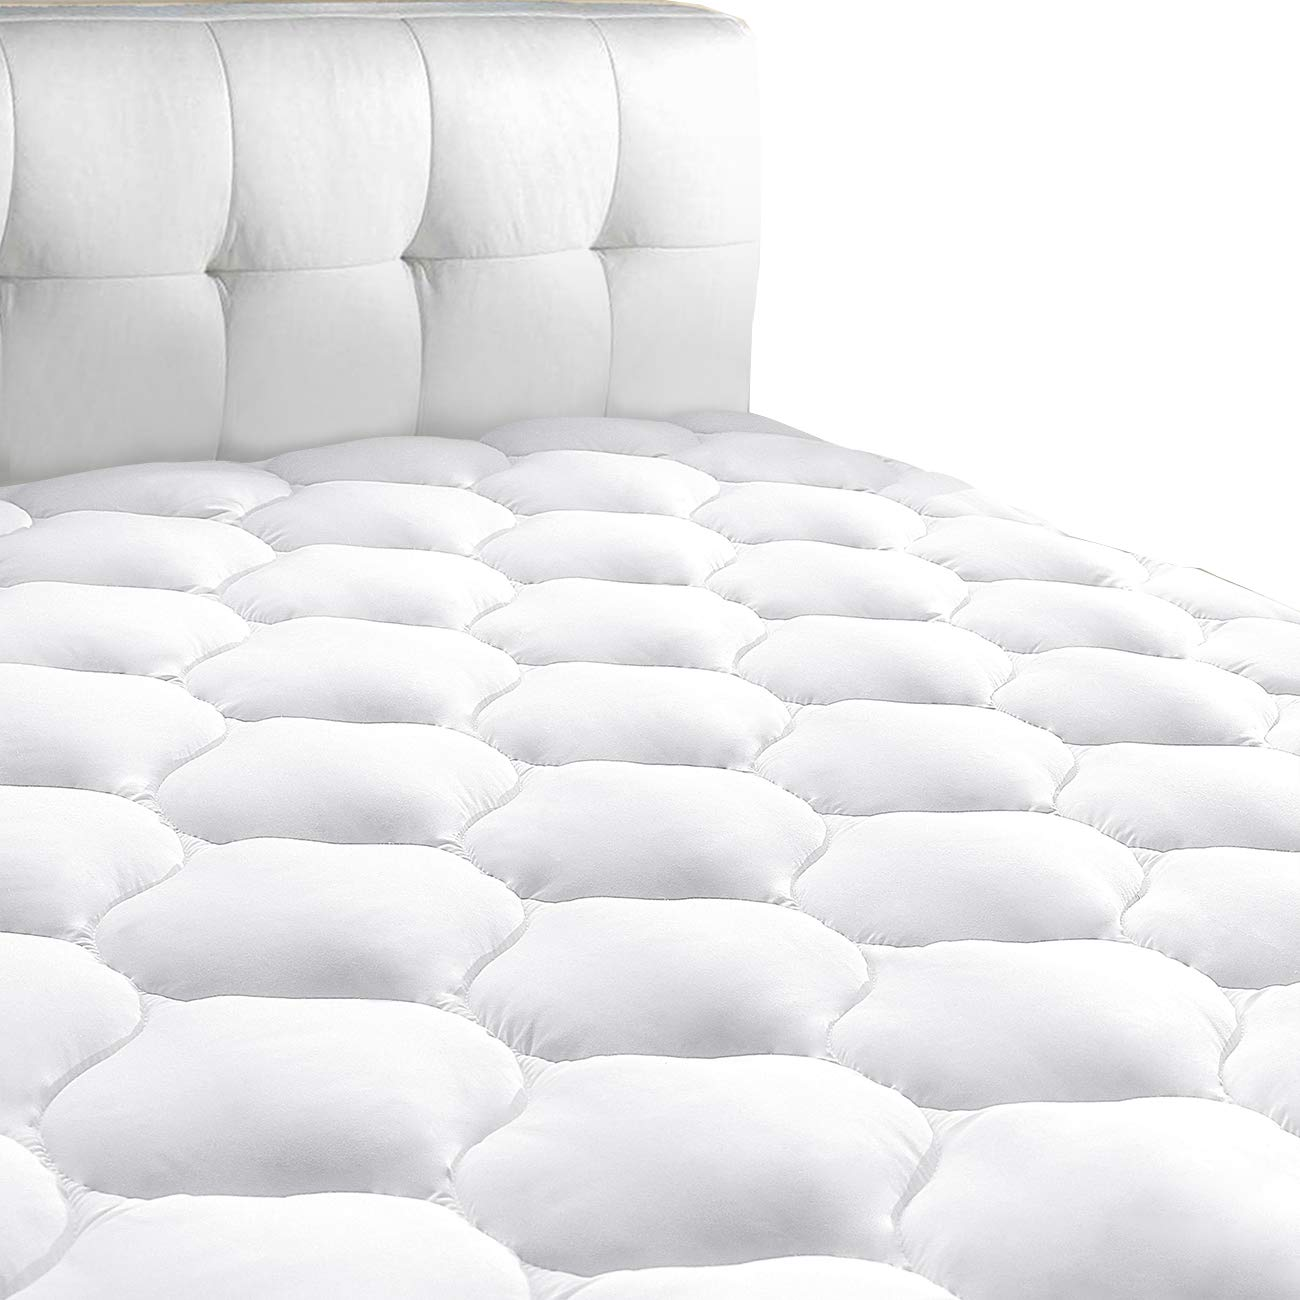 "King Mattress Pad Cover 8-21""Deep Pocket - Cooling Mattress Topper Overfilled 300TC Snow Down Alternative by Masvis"